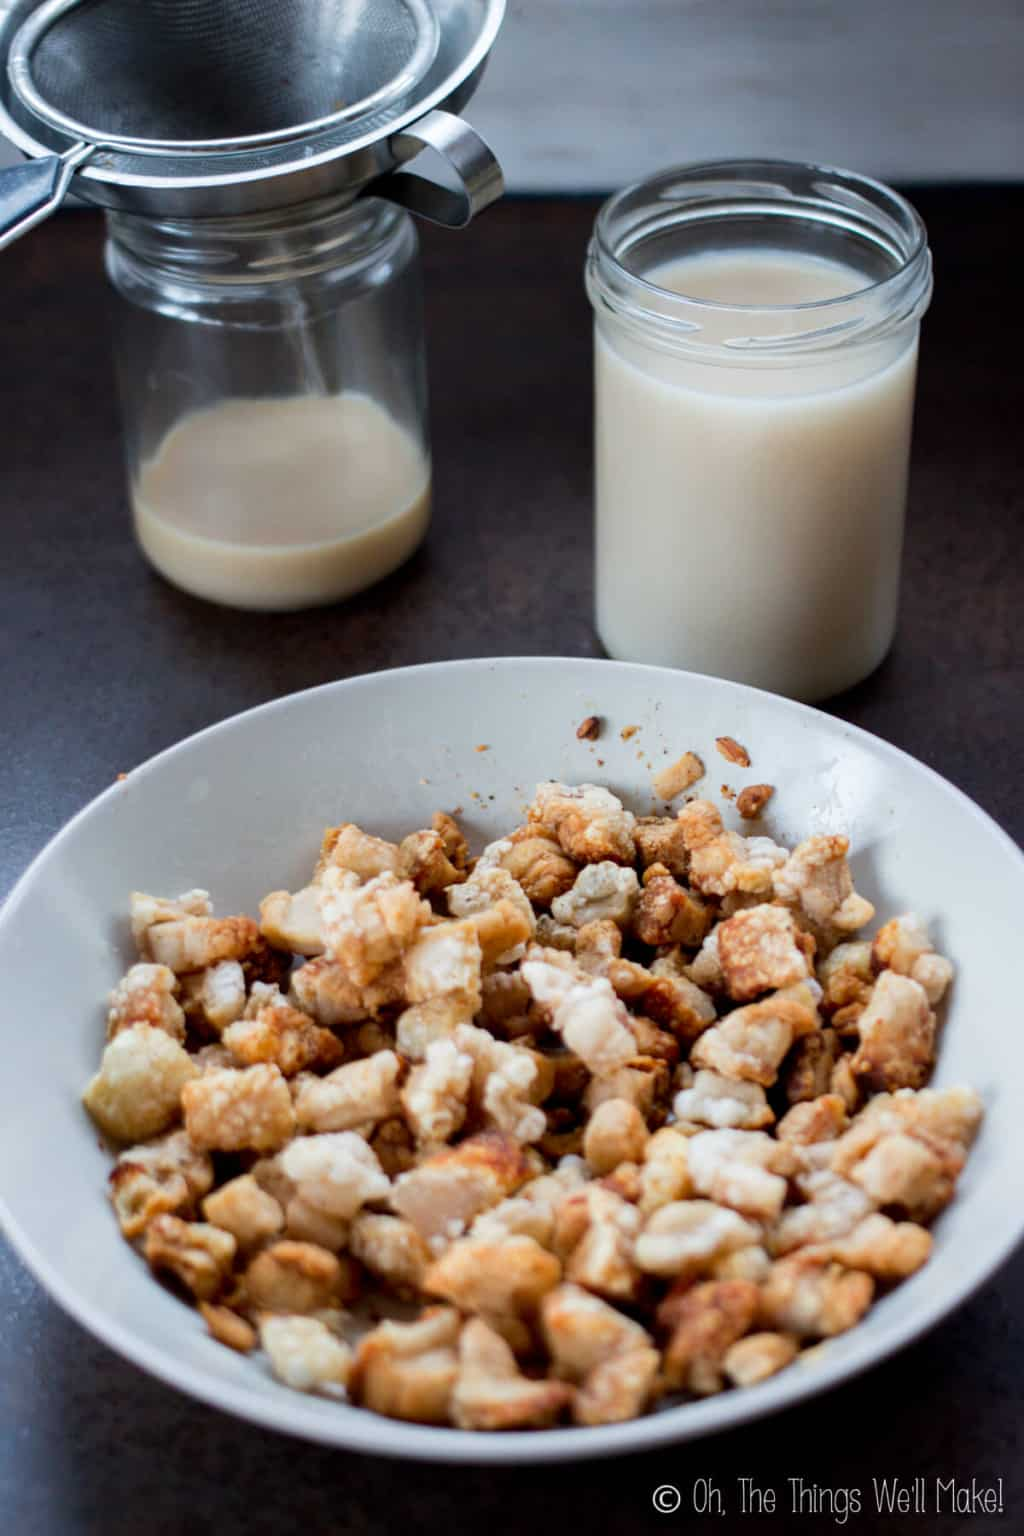 Close up of a white bowl of fried pork cracklings in front of jars of home rendered lard.